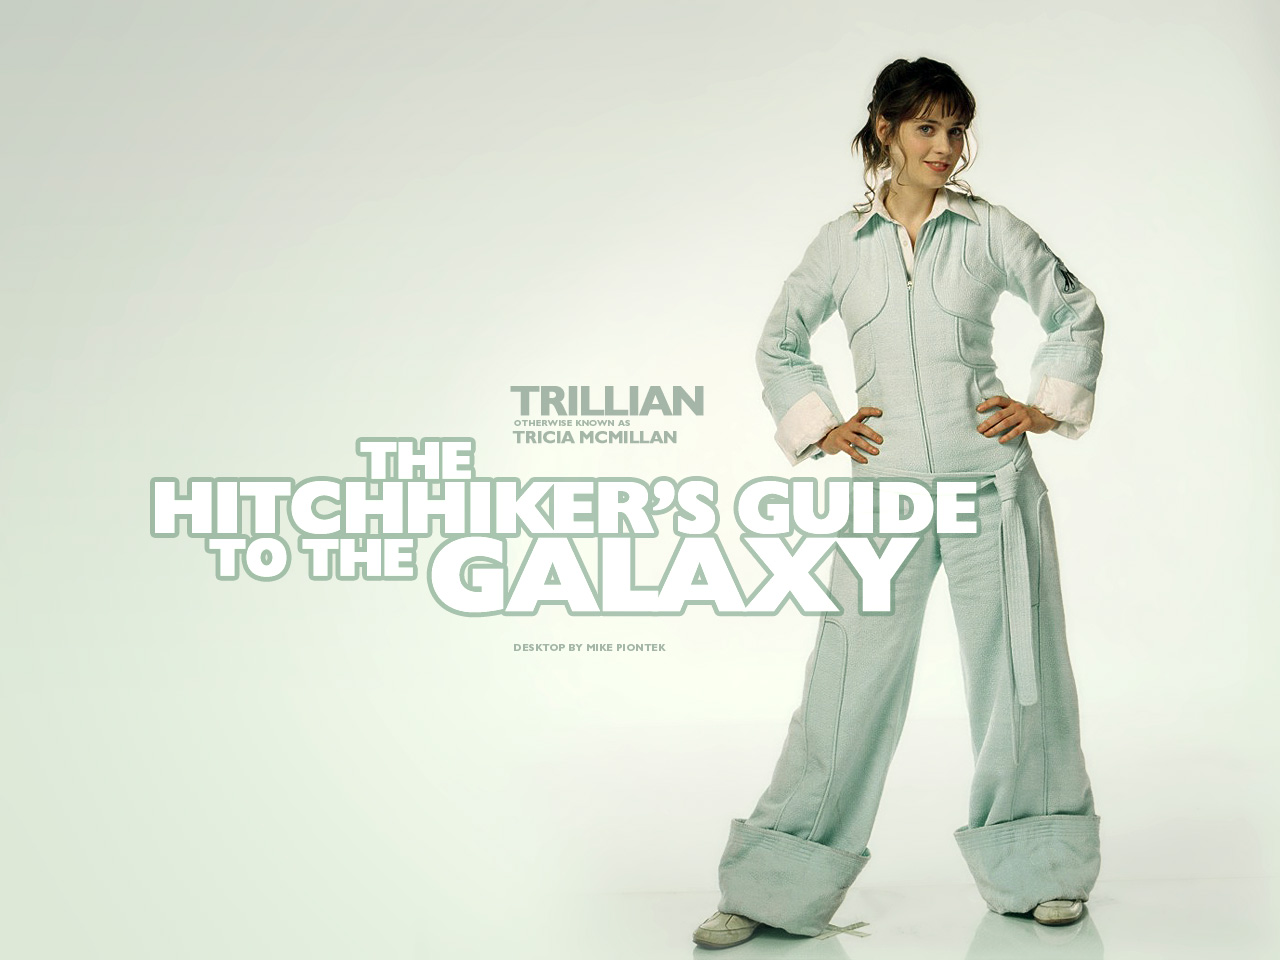 The ultimate hitchhikers guide to the galaxy hitchhiker 2016 car